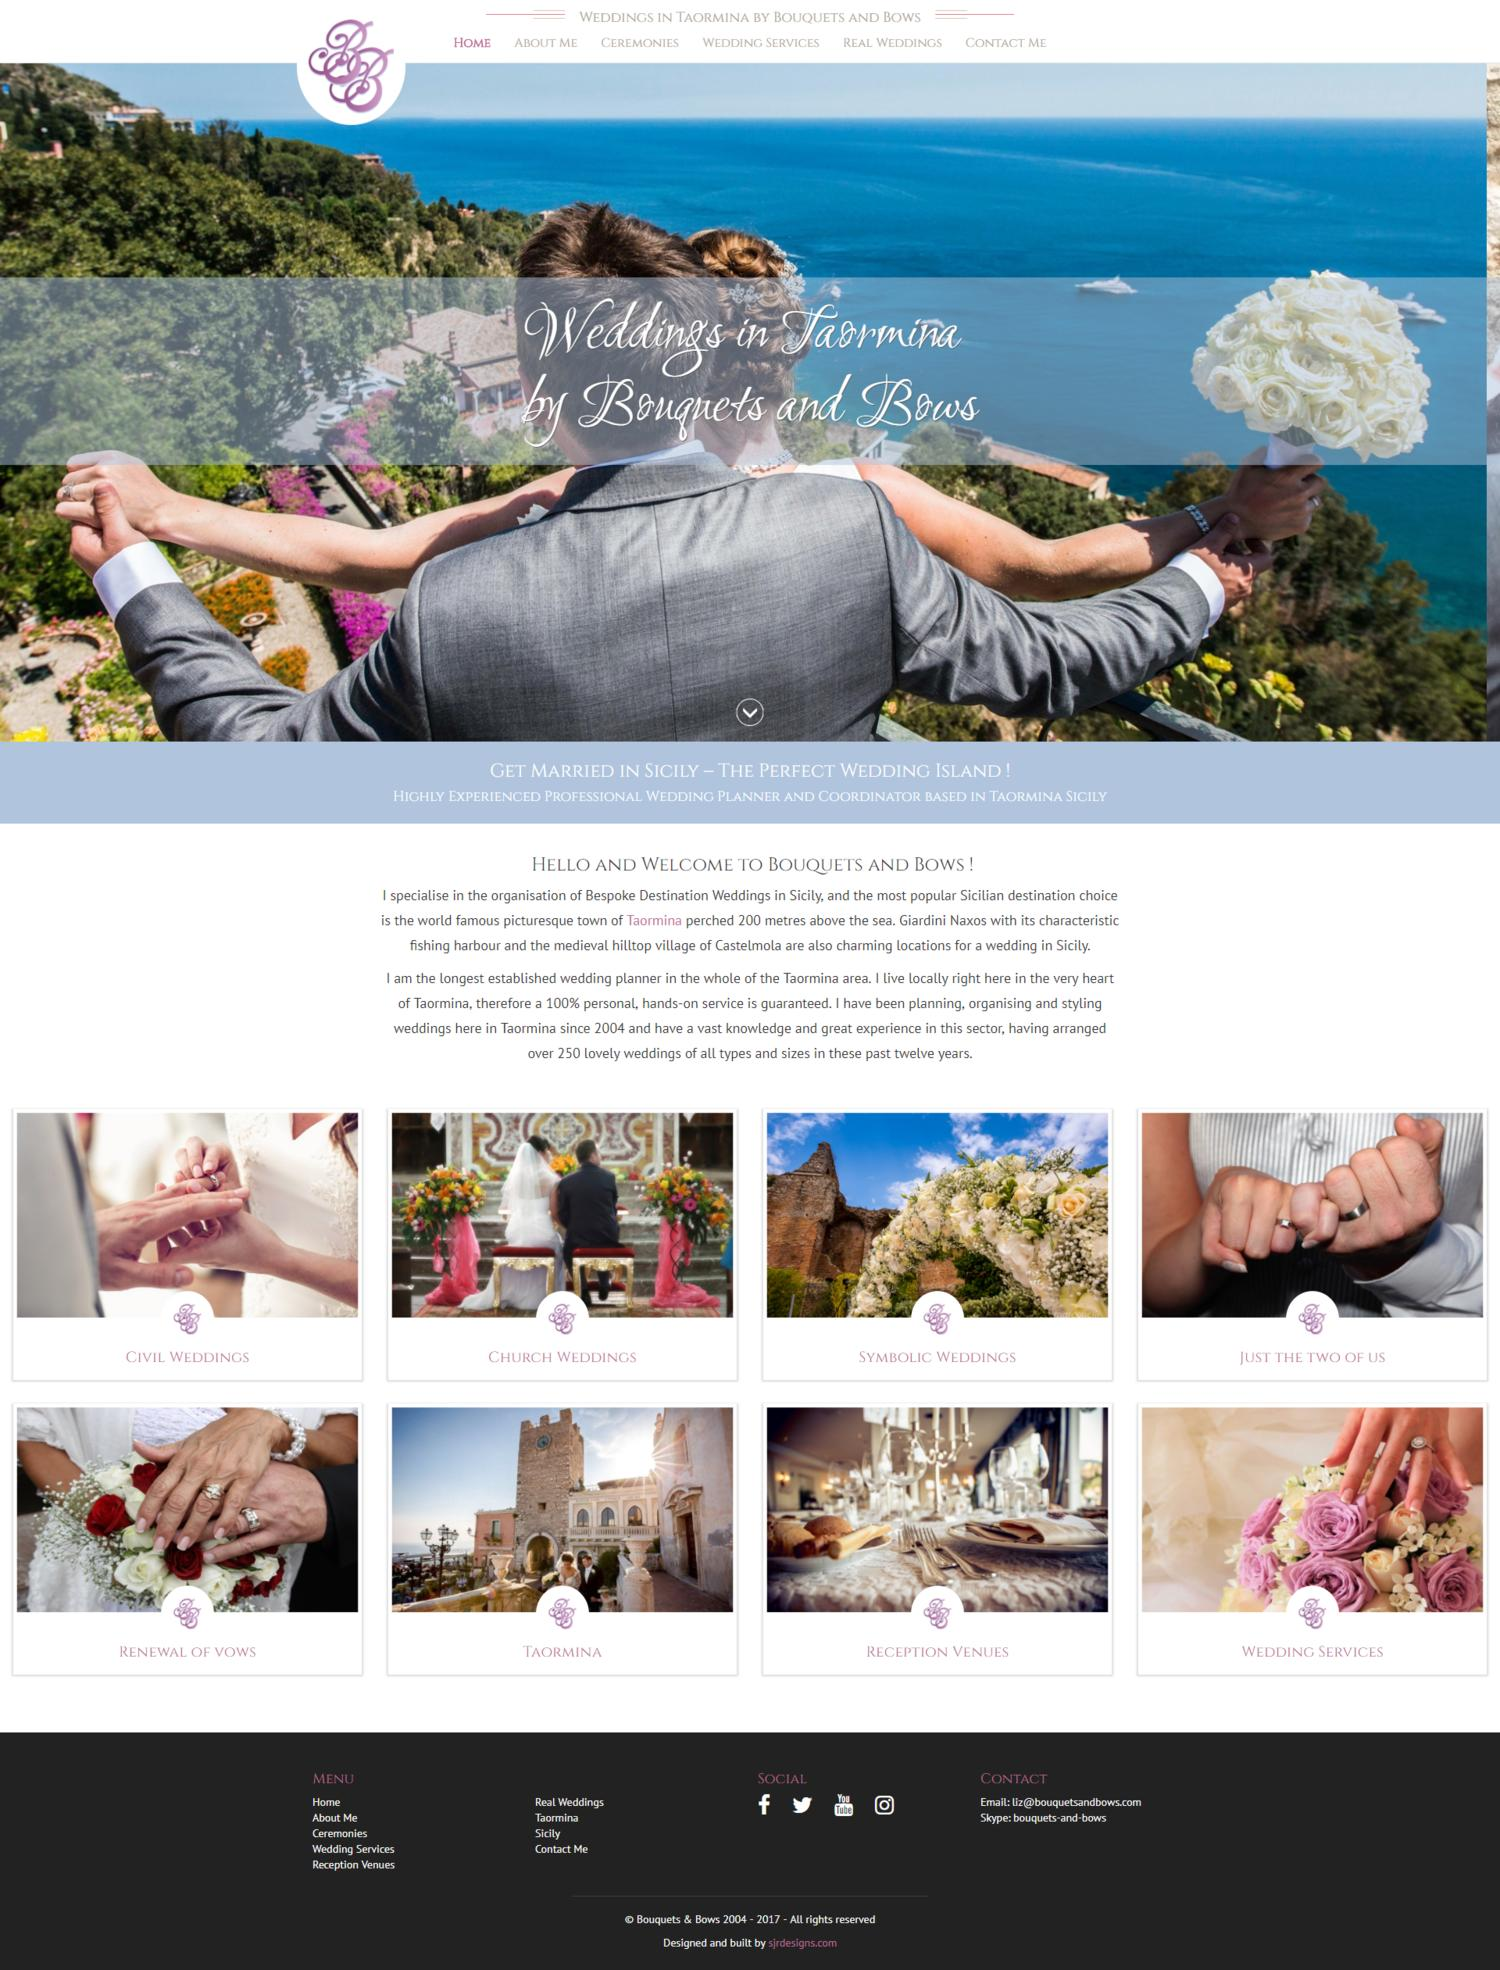 PSD to Responsive HTML5 by sjrichards88 - 110037